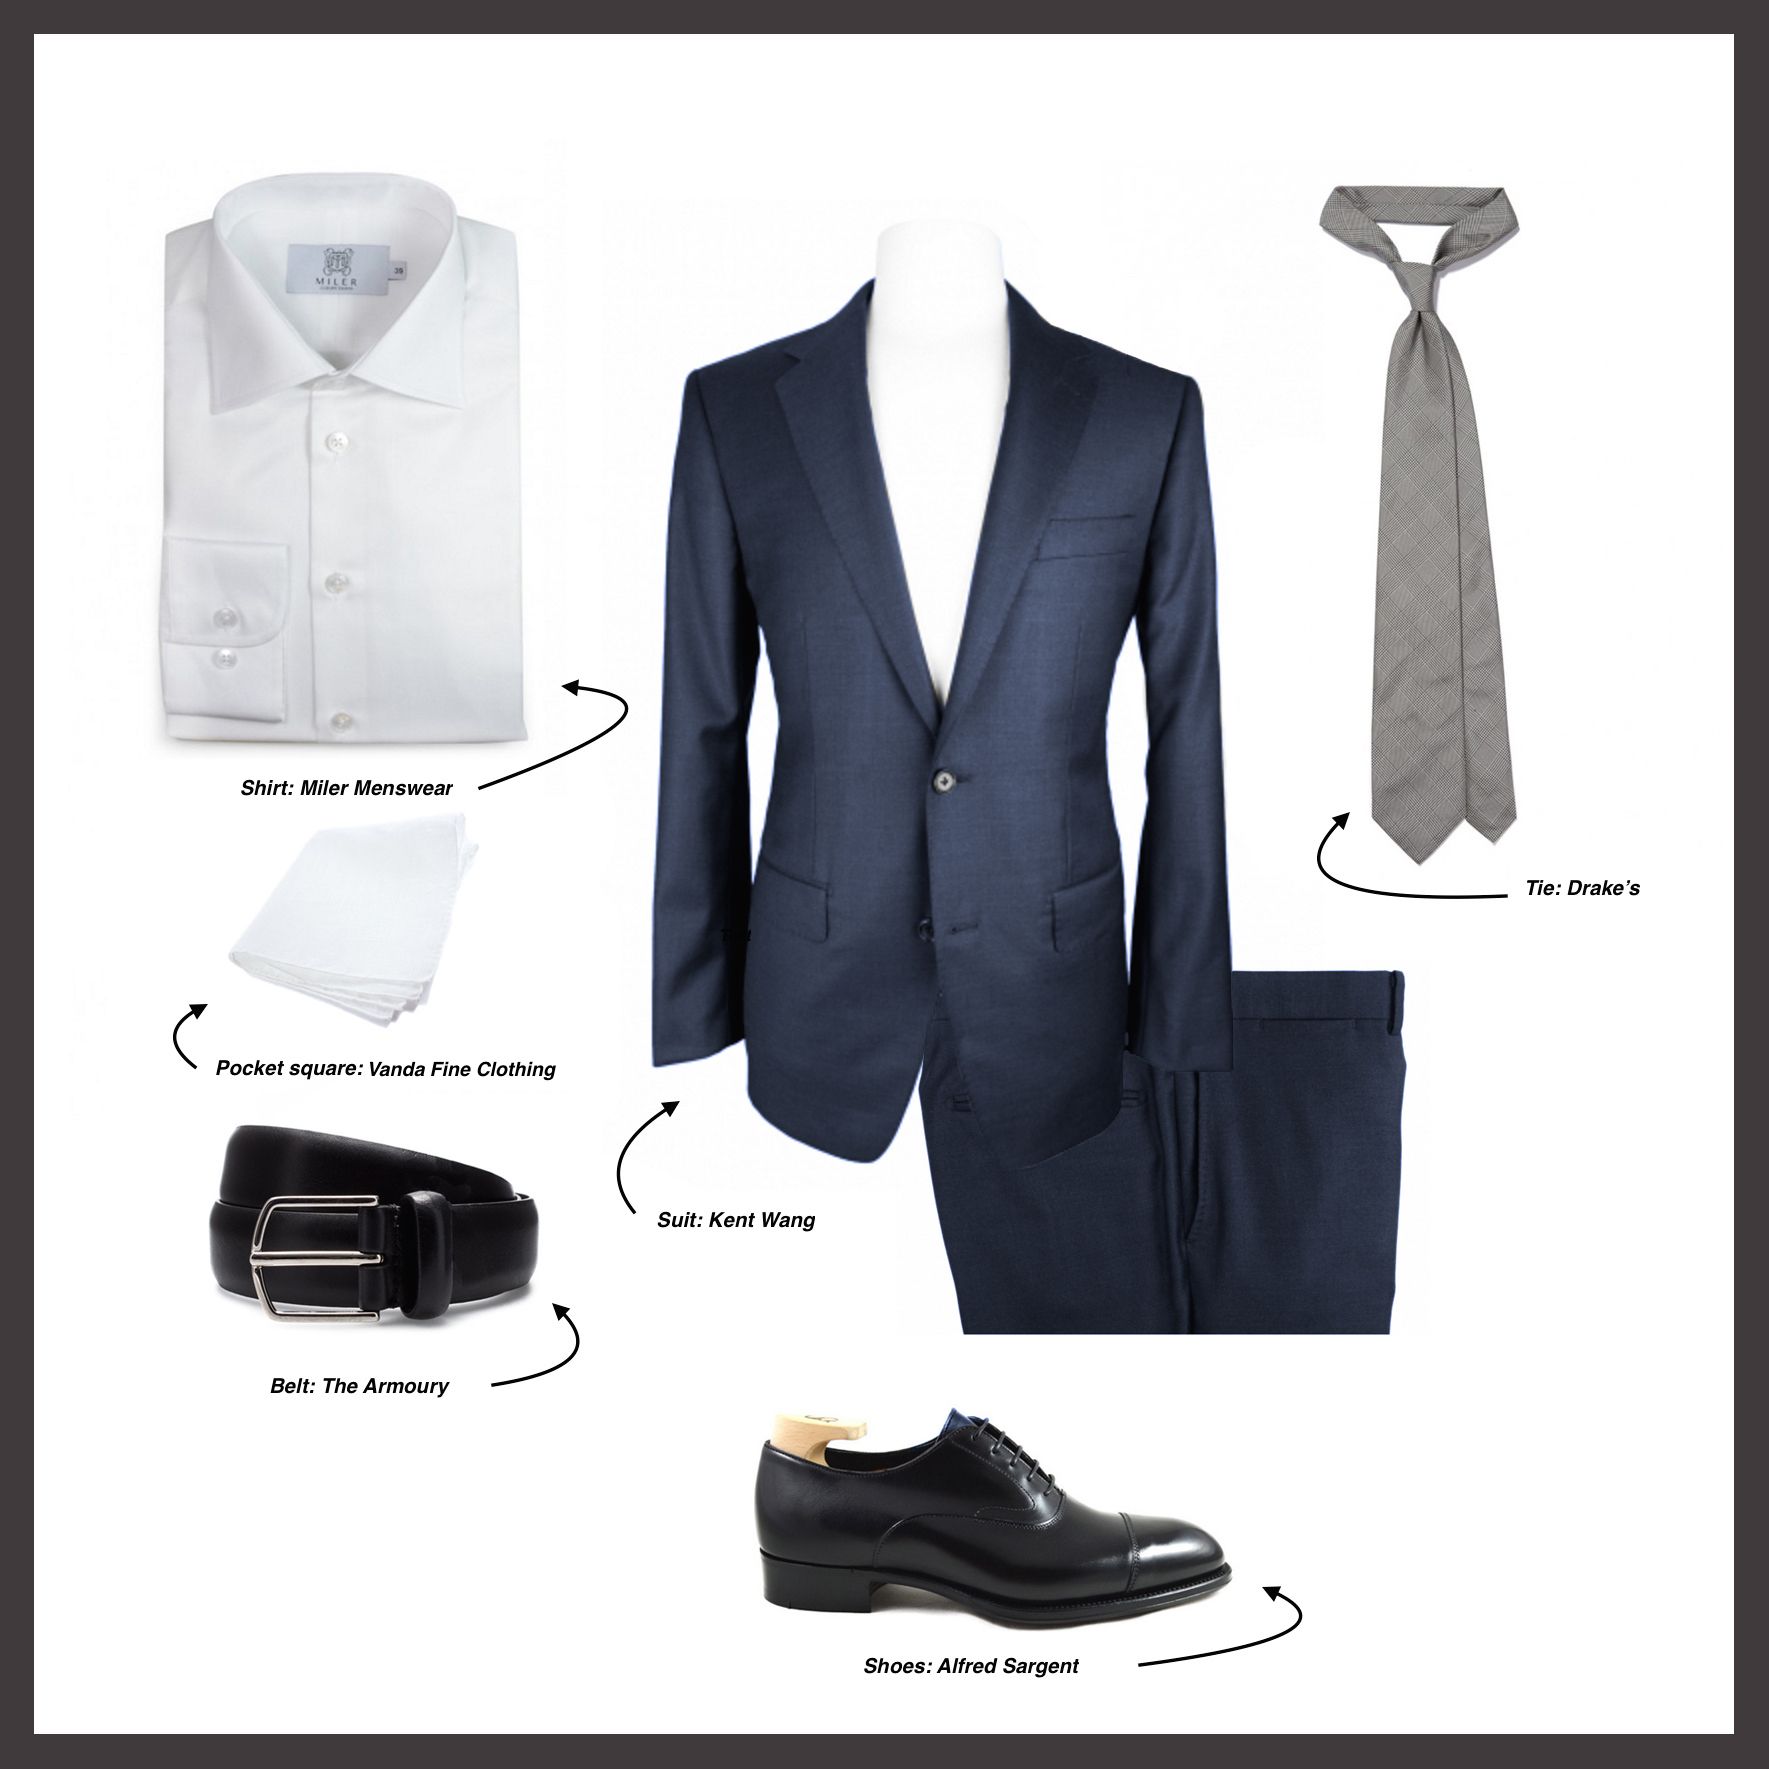 what a man should wear to a wedding what should a man wear to a wedding how to dress for a wedding men's wedding style styleforum